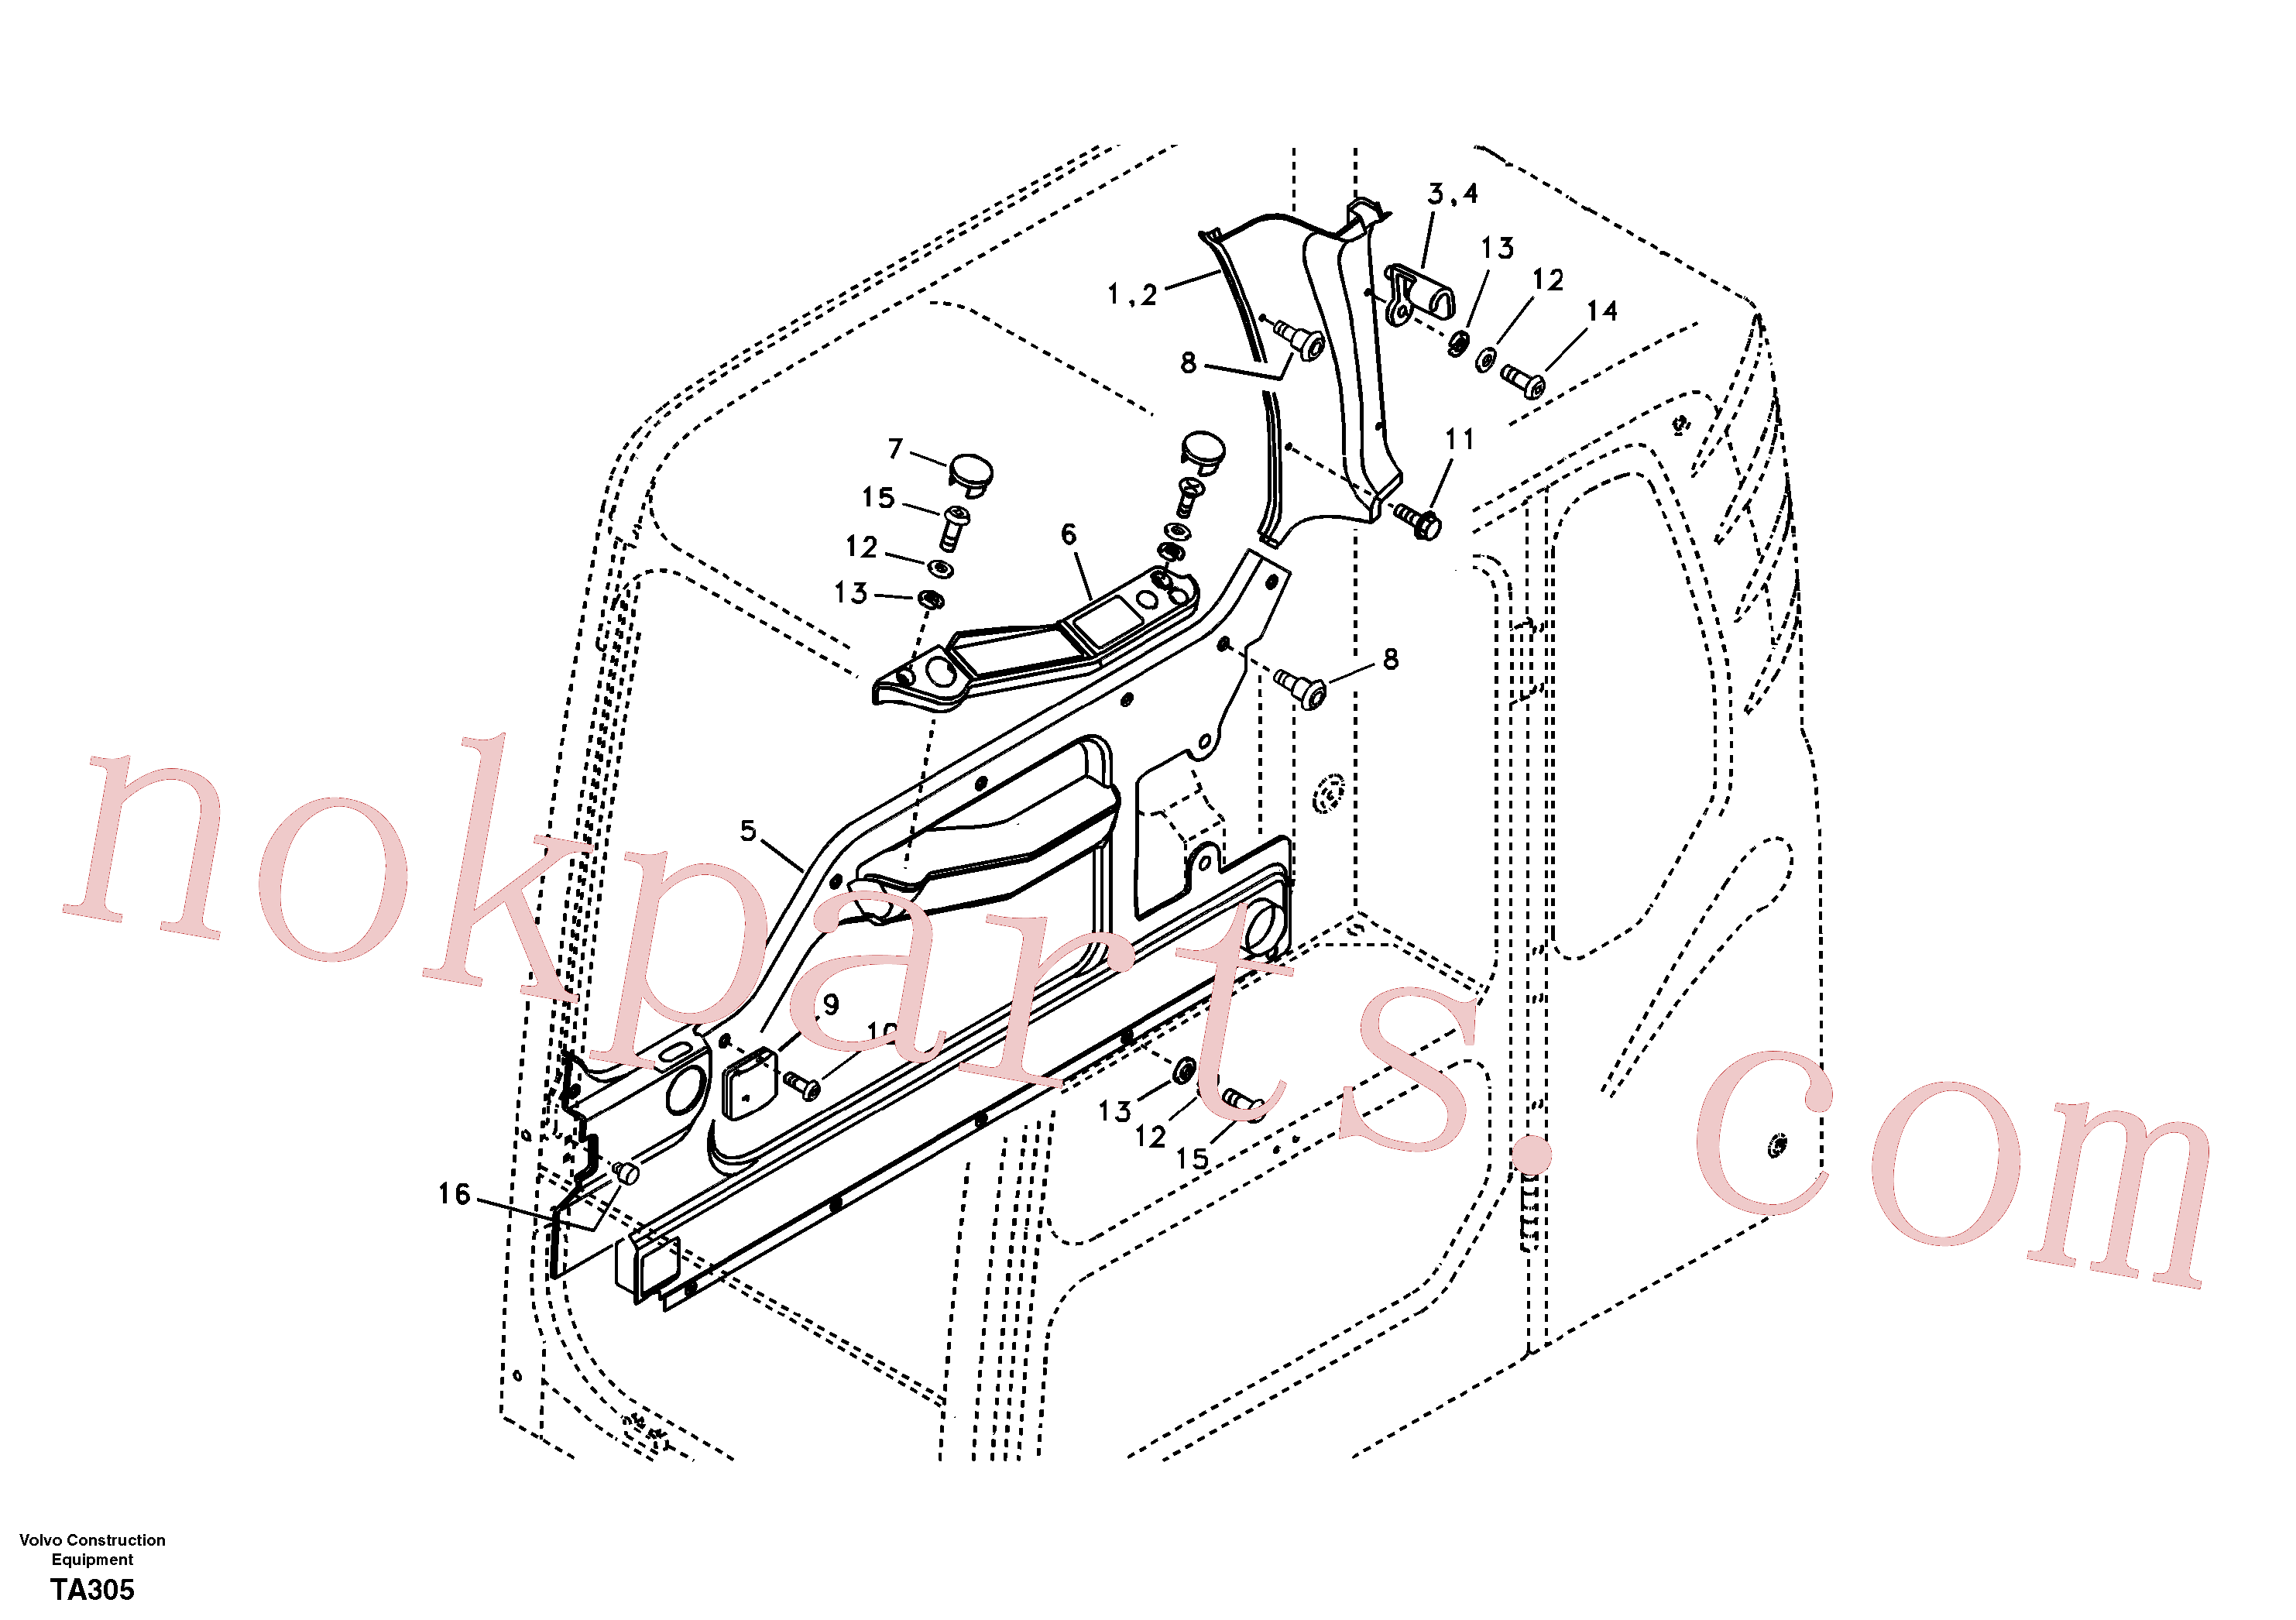 VOE14572455 for Volvo Operator's cab(TA305 assembly)